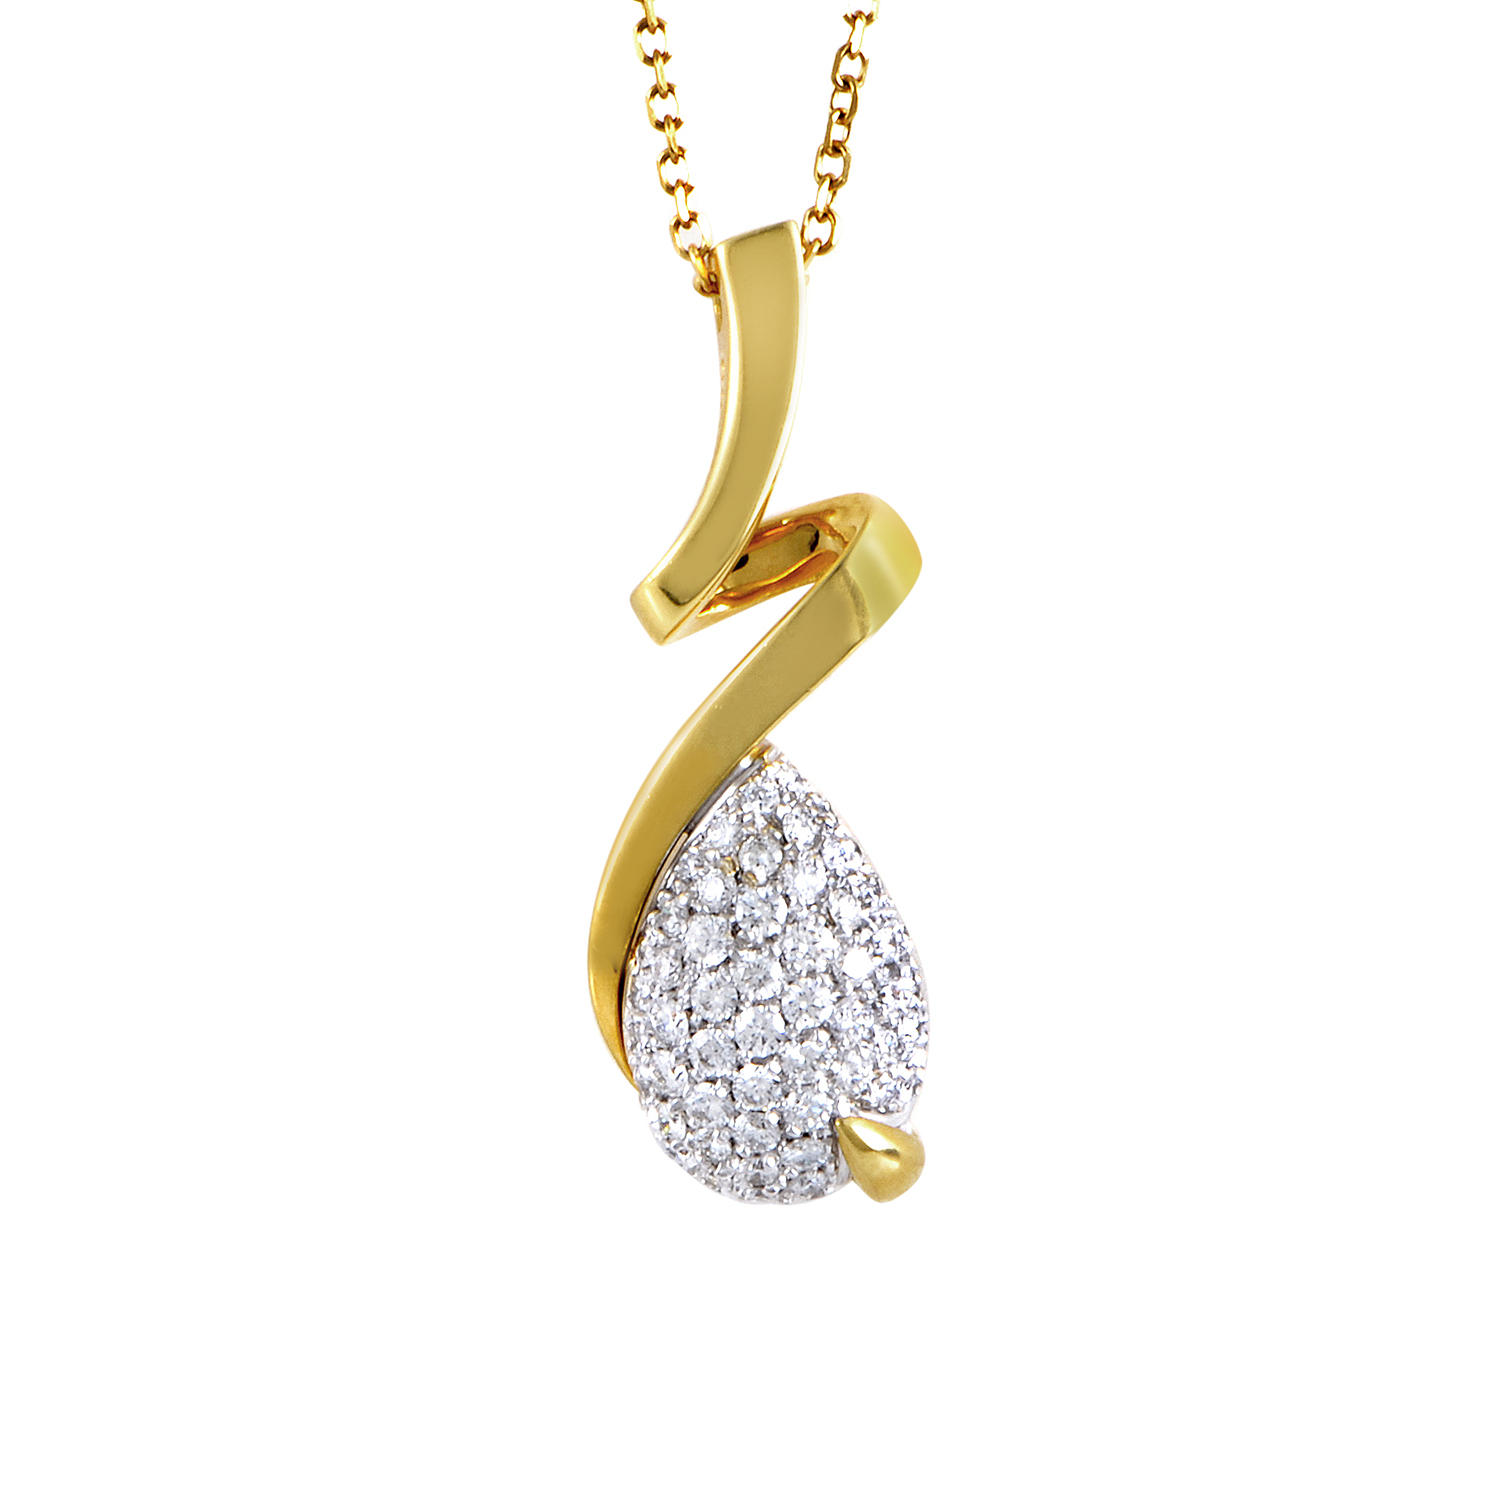 18K Multi-Tone Gold Diamond Pave Pendant Necklace 0727-826-2